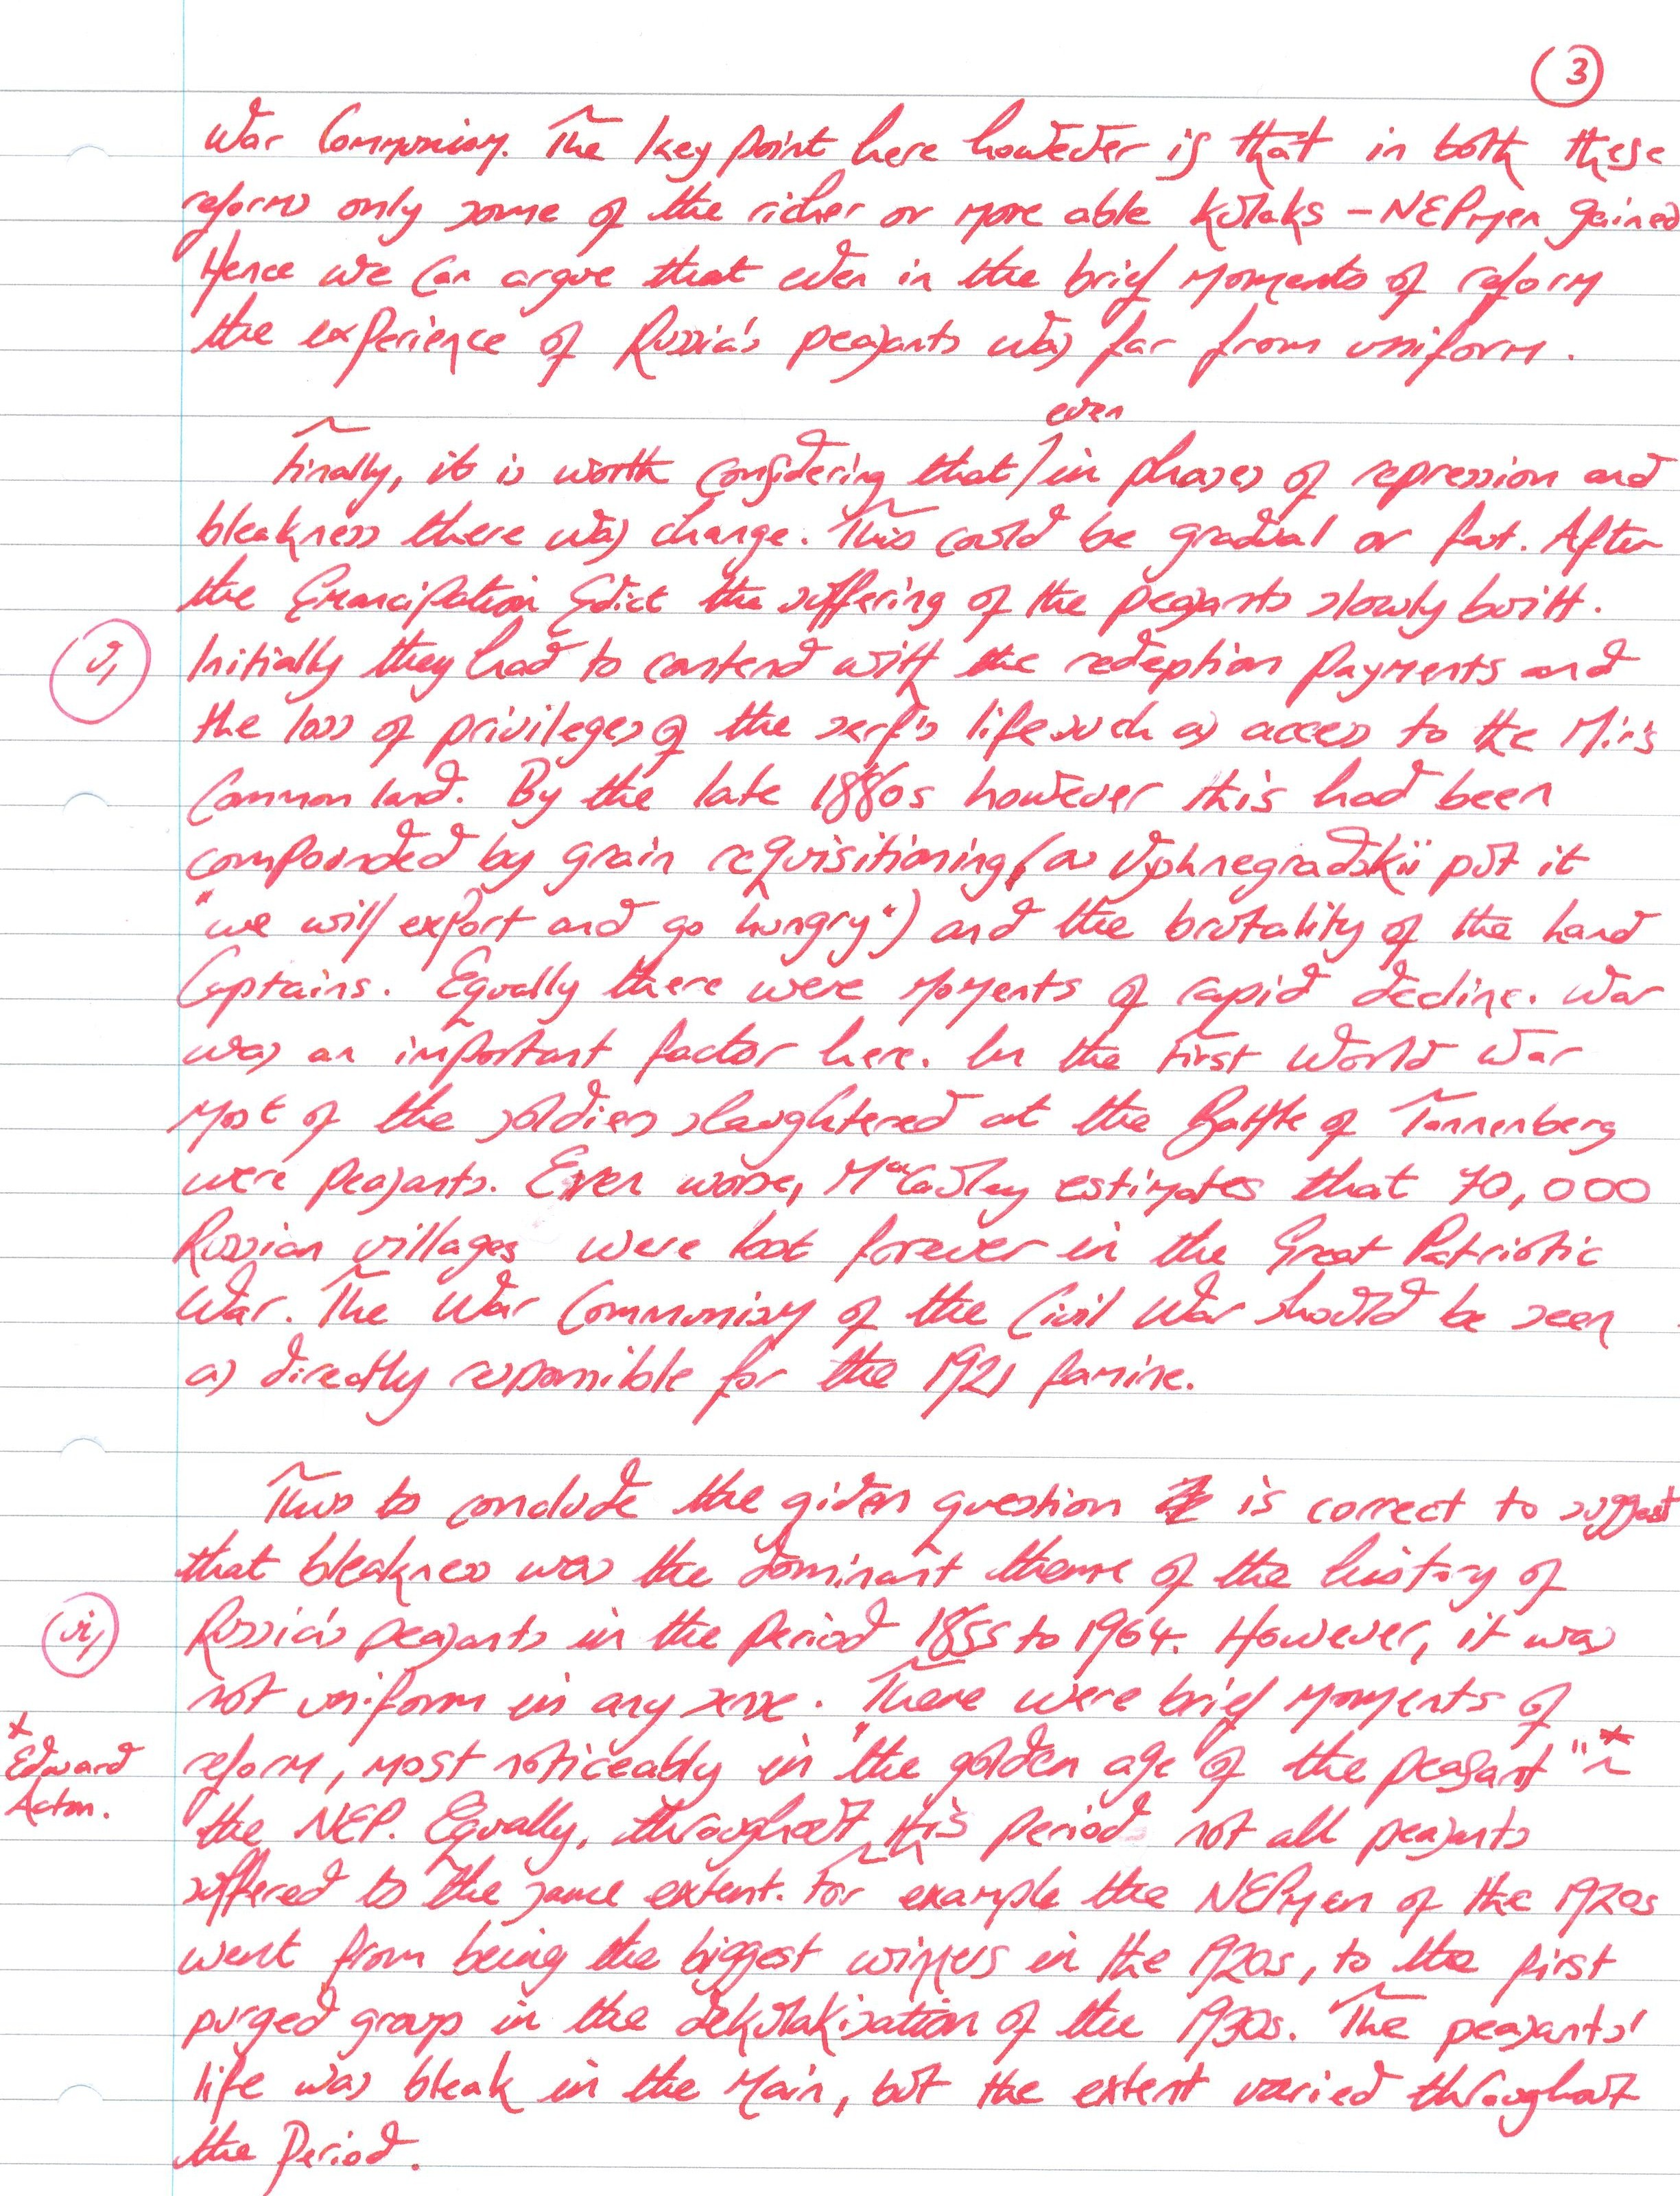 compare and contrast essay scarlet letter and crucible Open document below is an essay on compare and contrast of crucible and scarlet lettr from anti essays, your source for research papers, essays, and term paper.